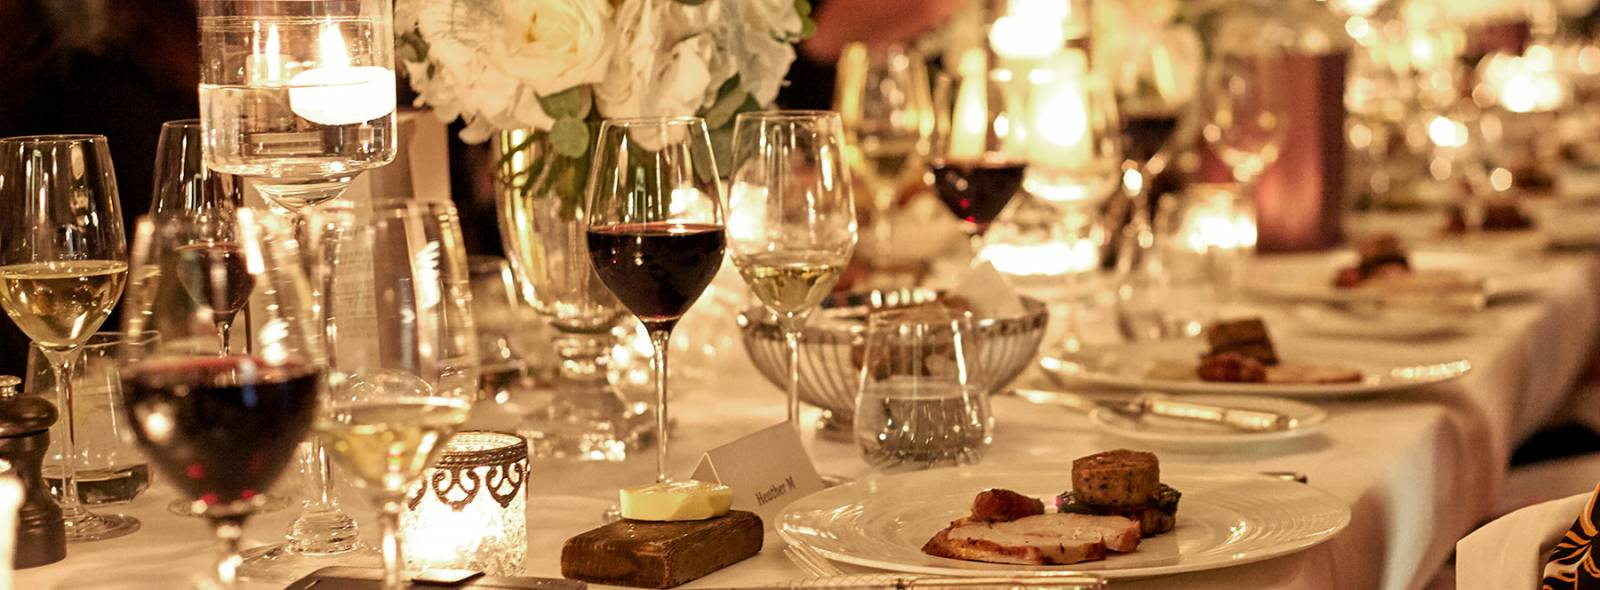 Savoy Grill investiture celebration package GRG